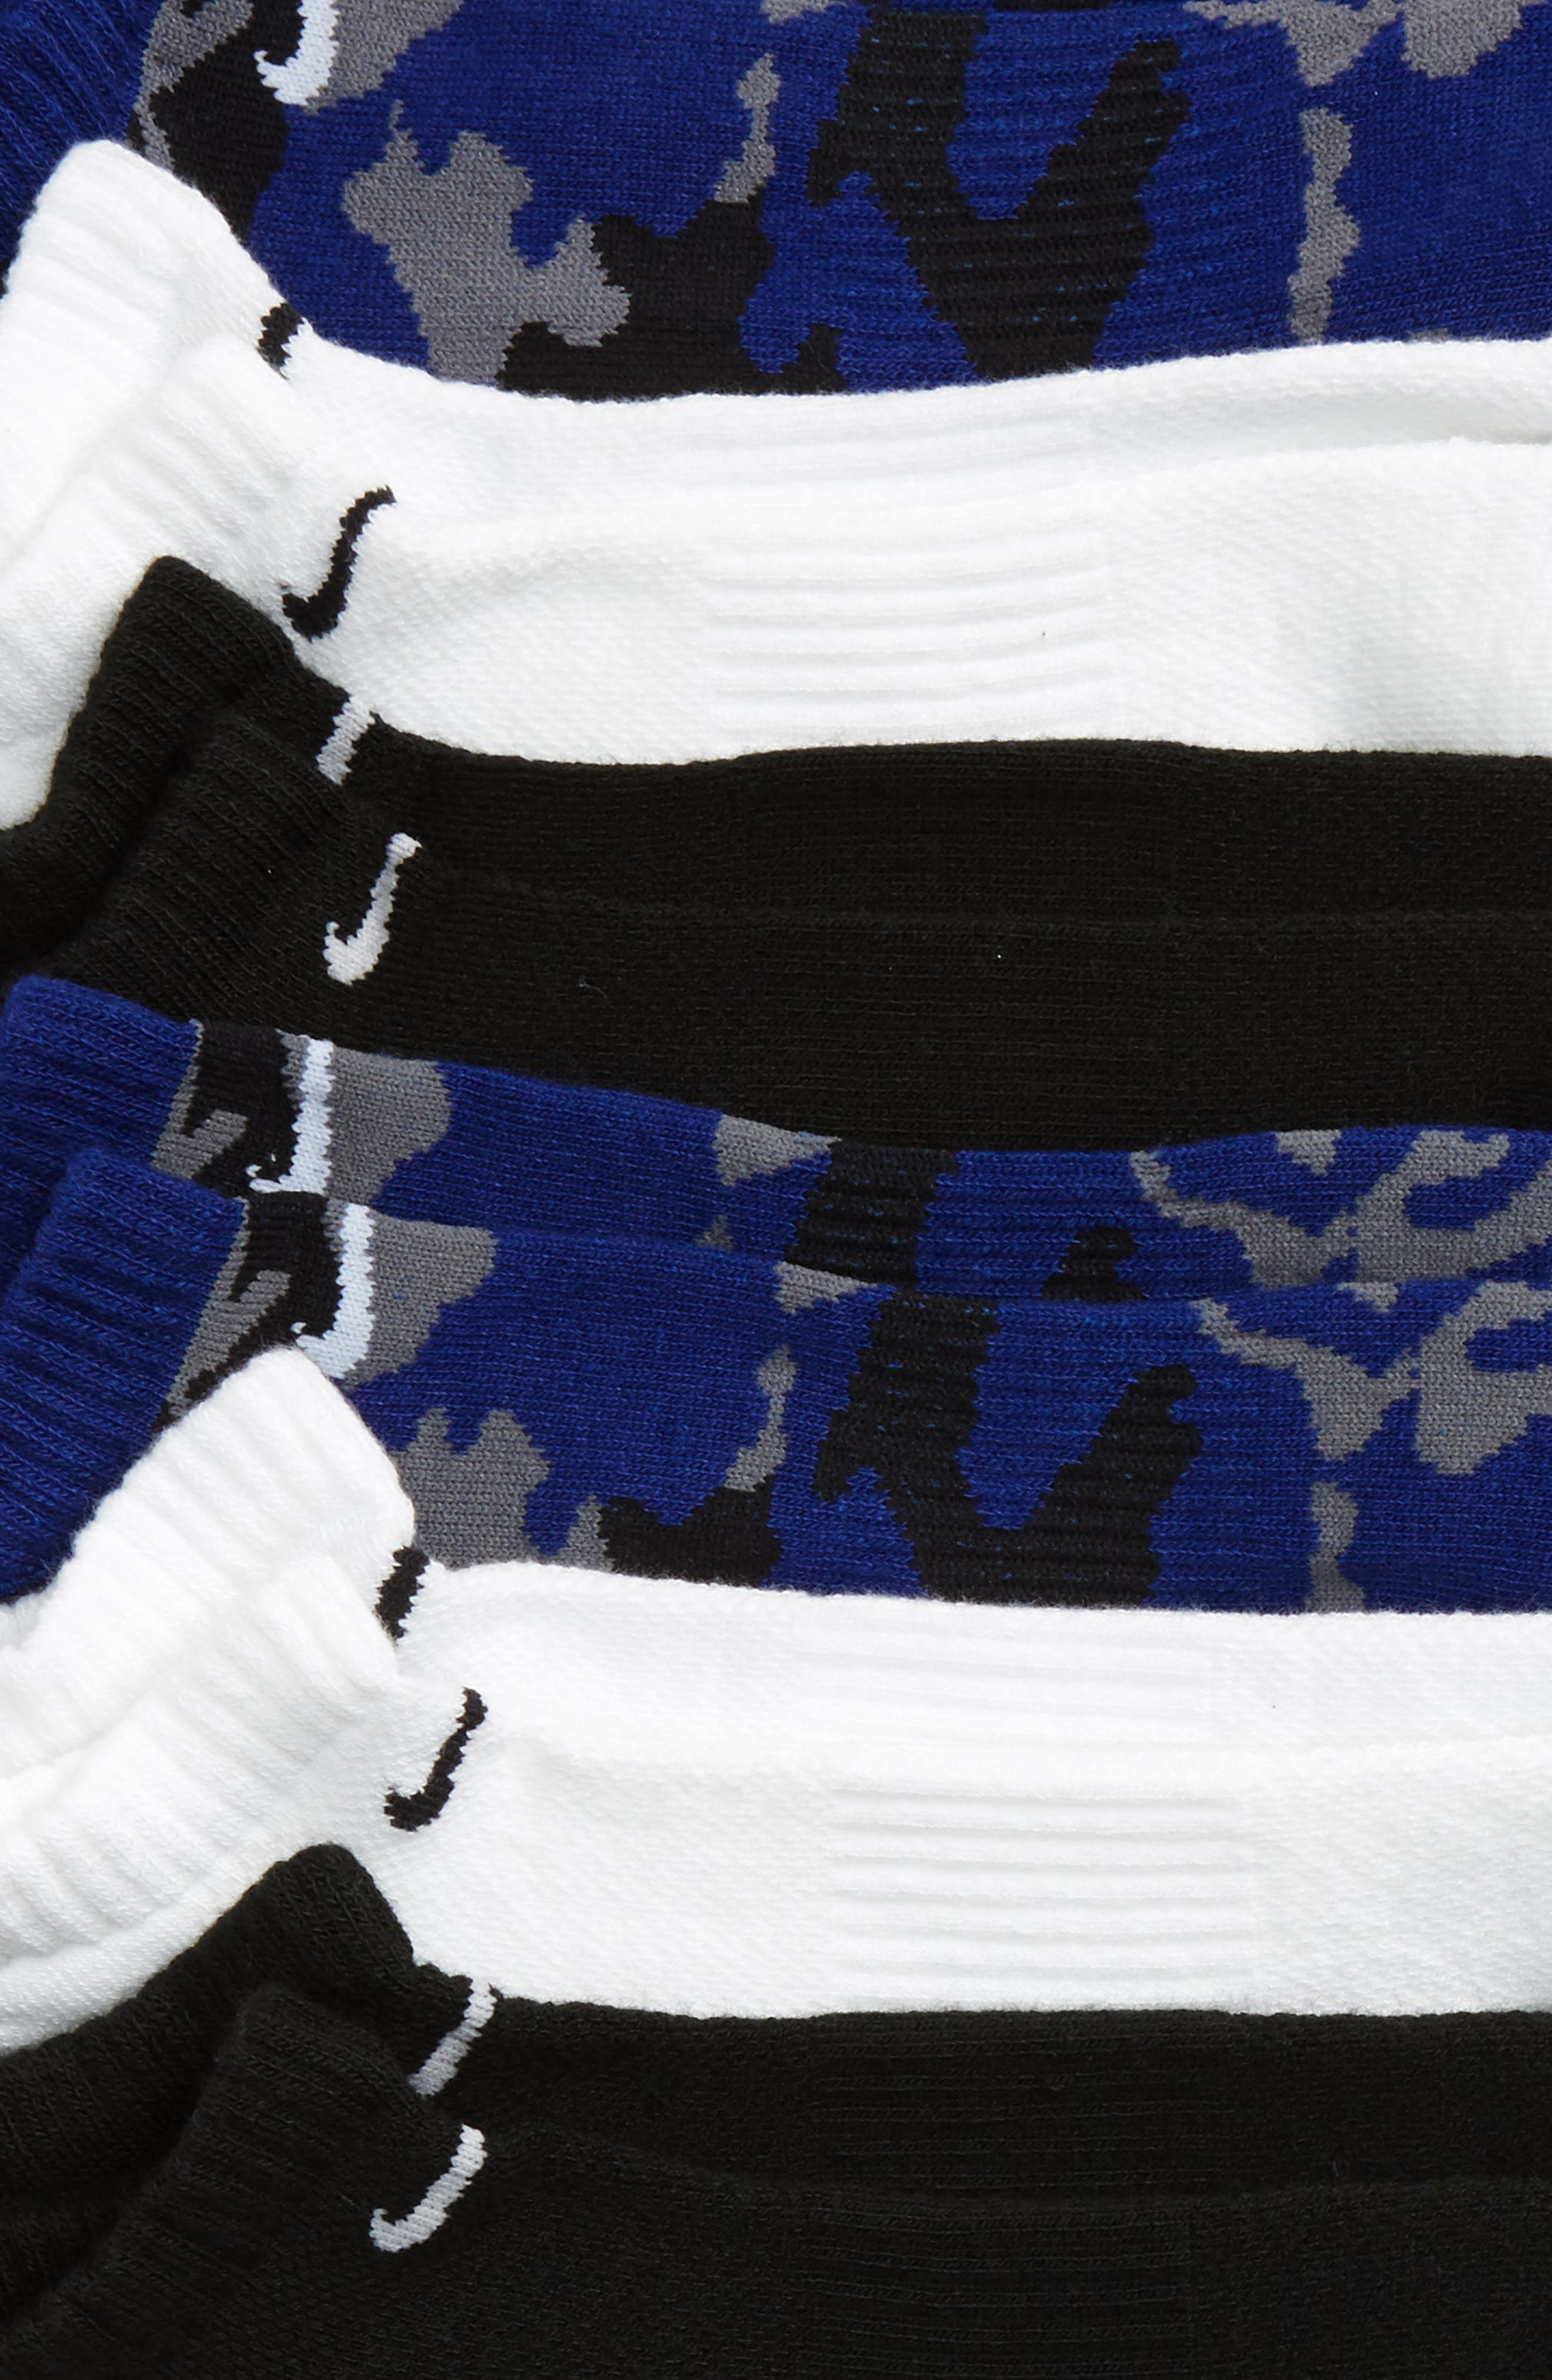 6-Pack Dri-FIT No-Show Socks,                             Alternate thumbnail 2, color,                             BLUE CAMO/ WHITE/ BLACK